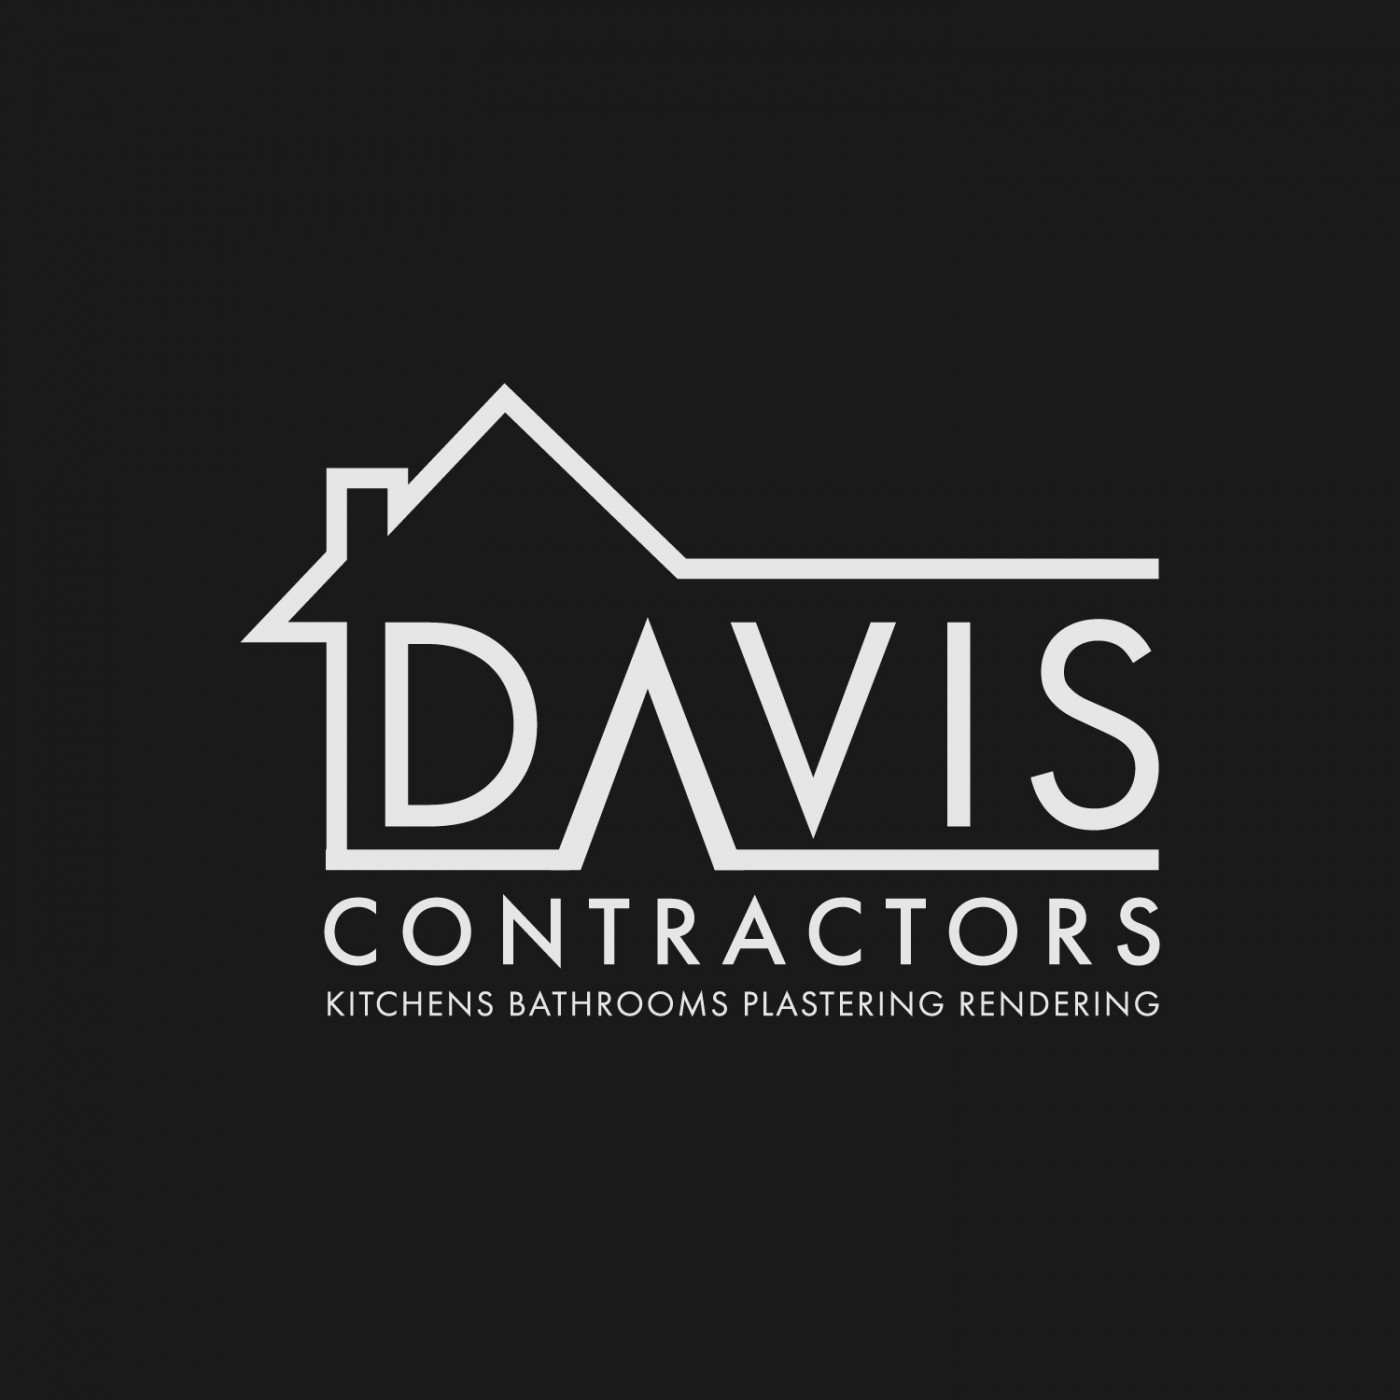 Davis Contractors-screen res file-onblack